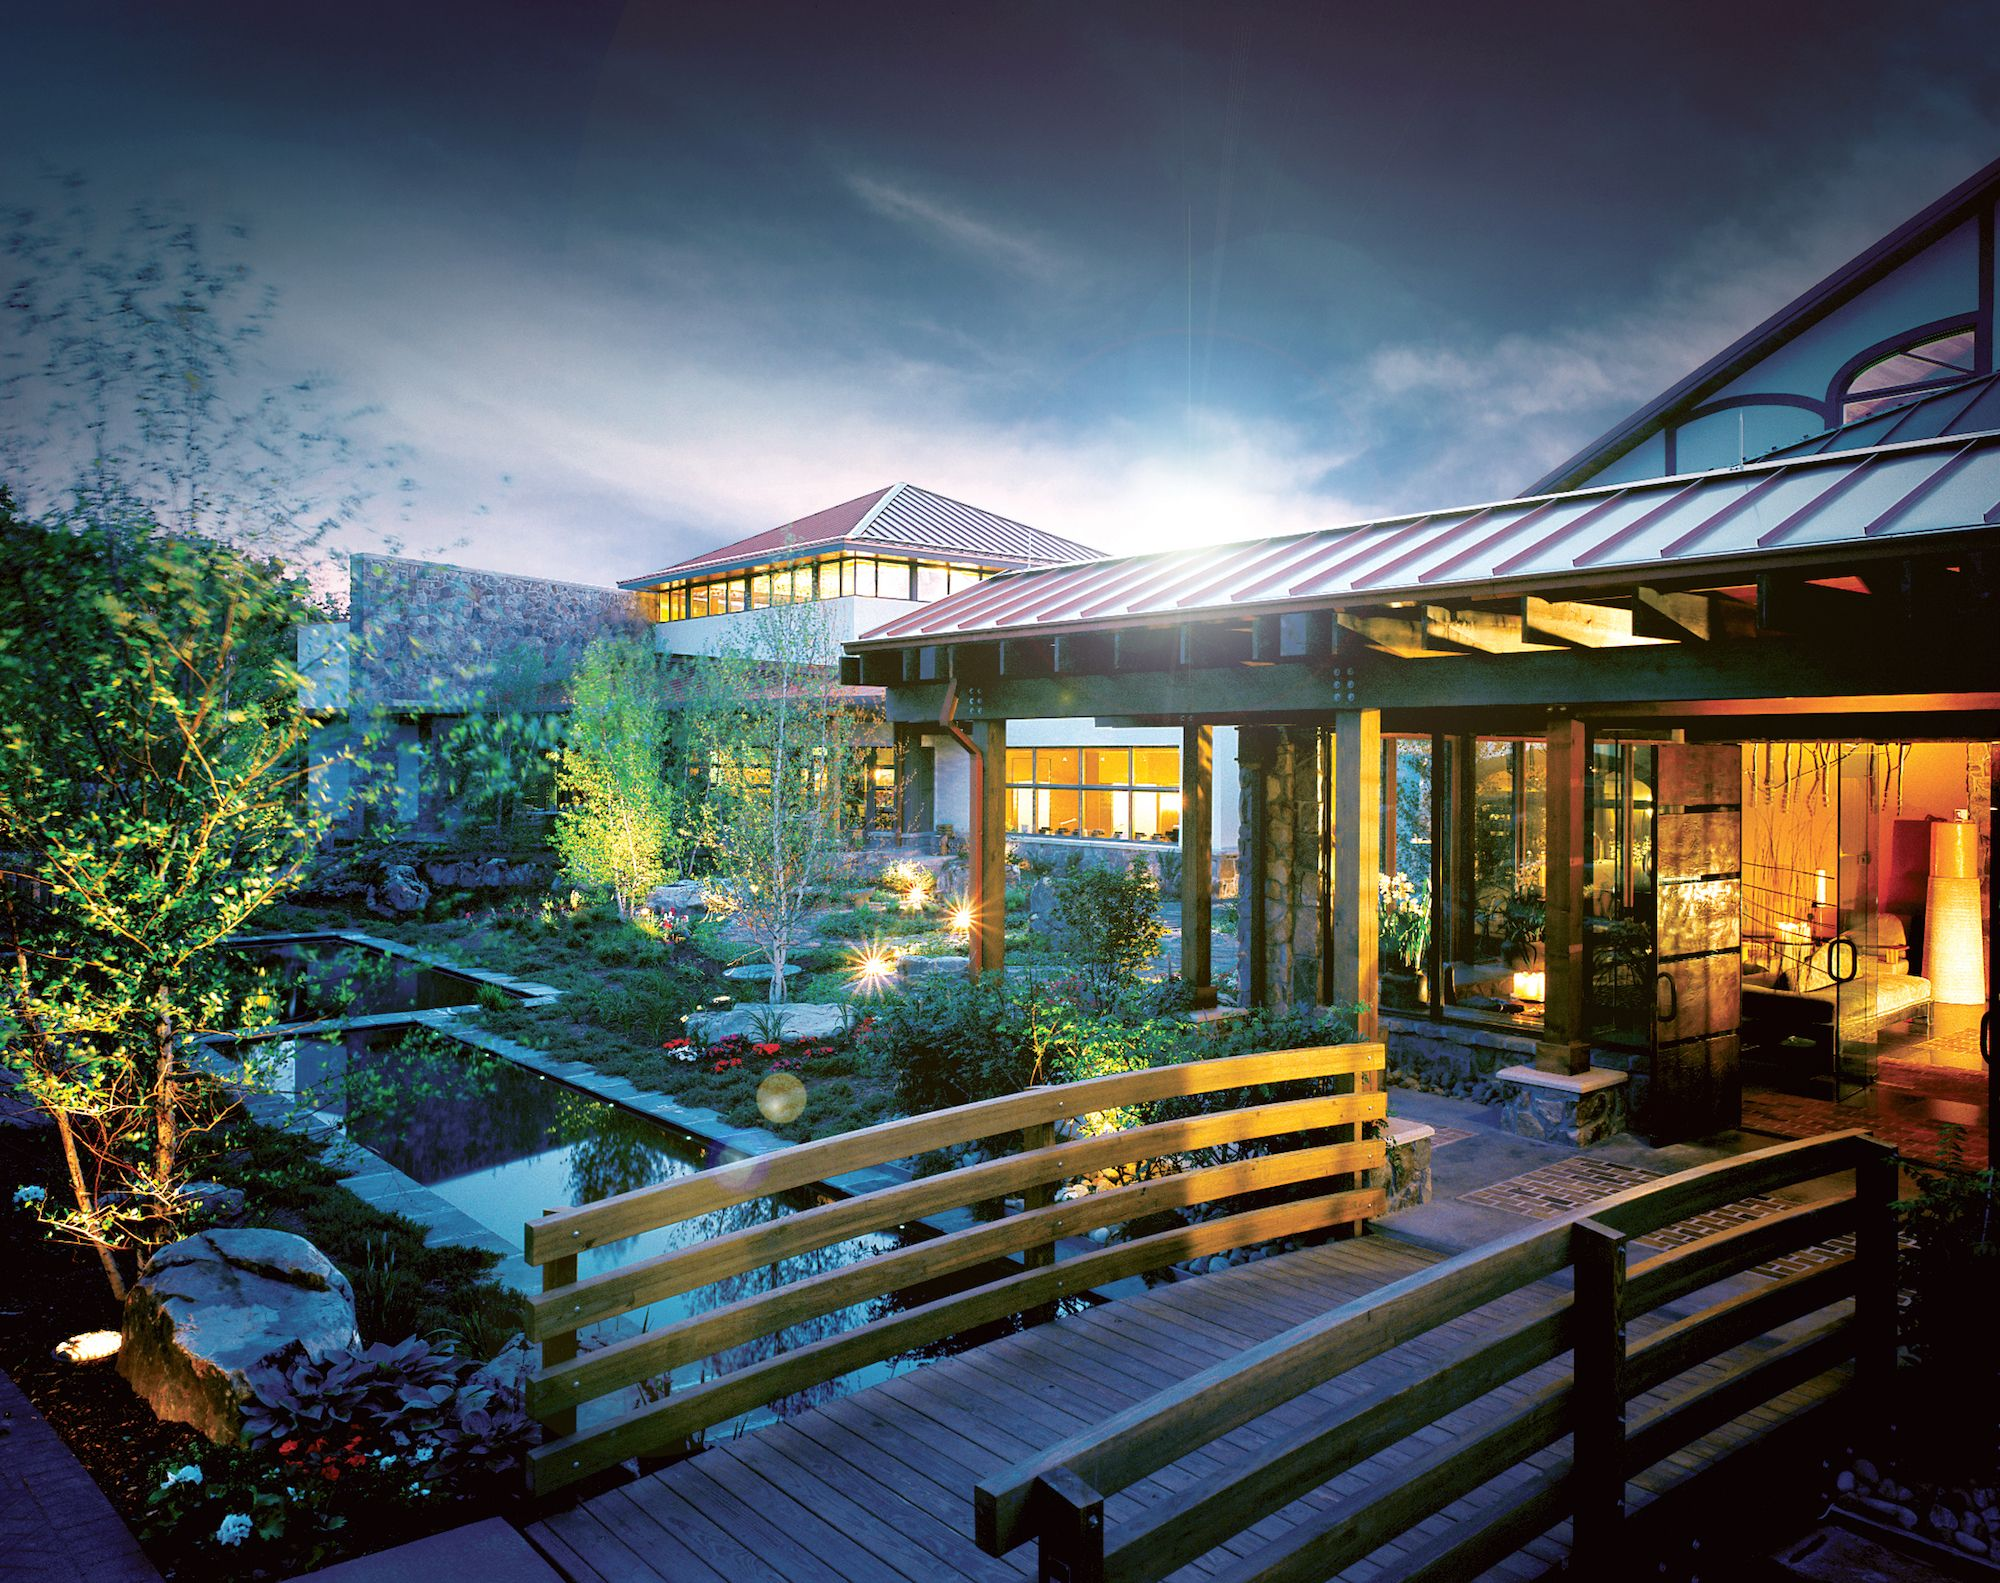 25 Best Spa Weekends - Top Spa Resorts Near Me